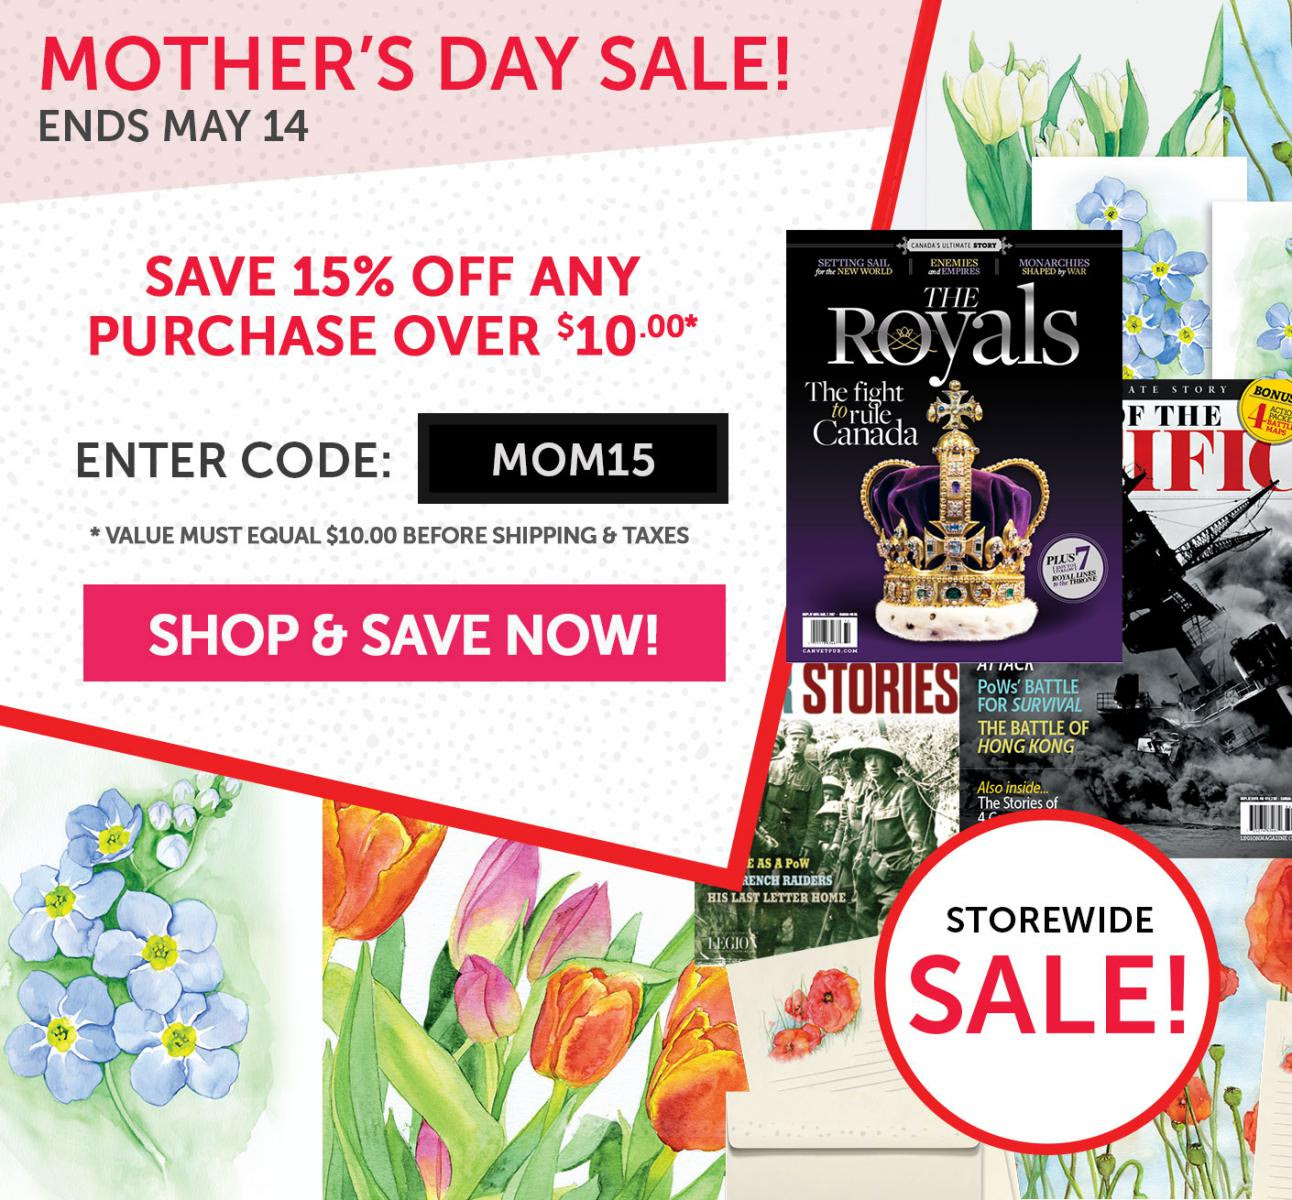 Mother's Day Sale is almost done!